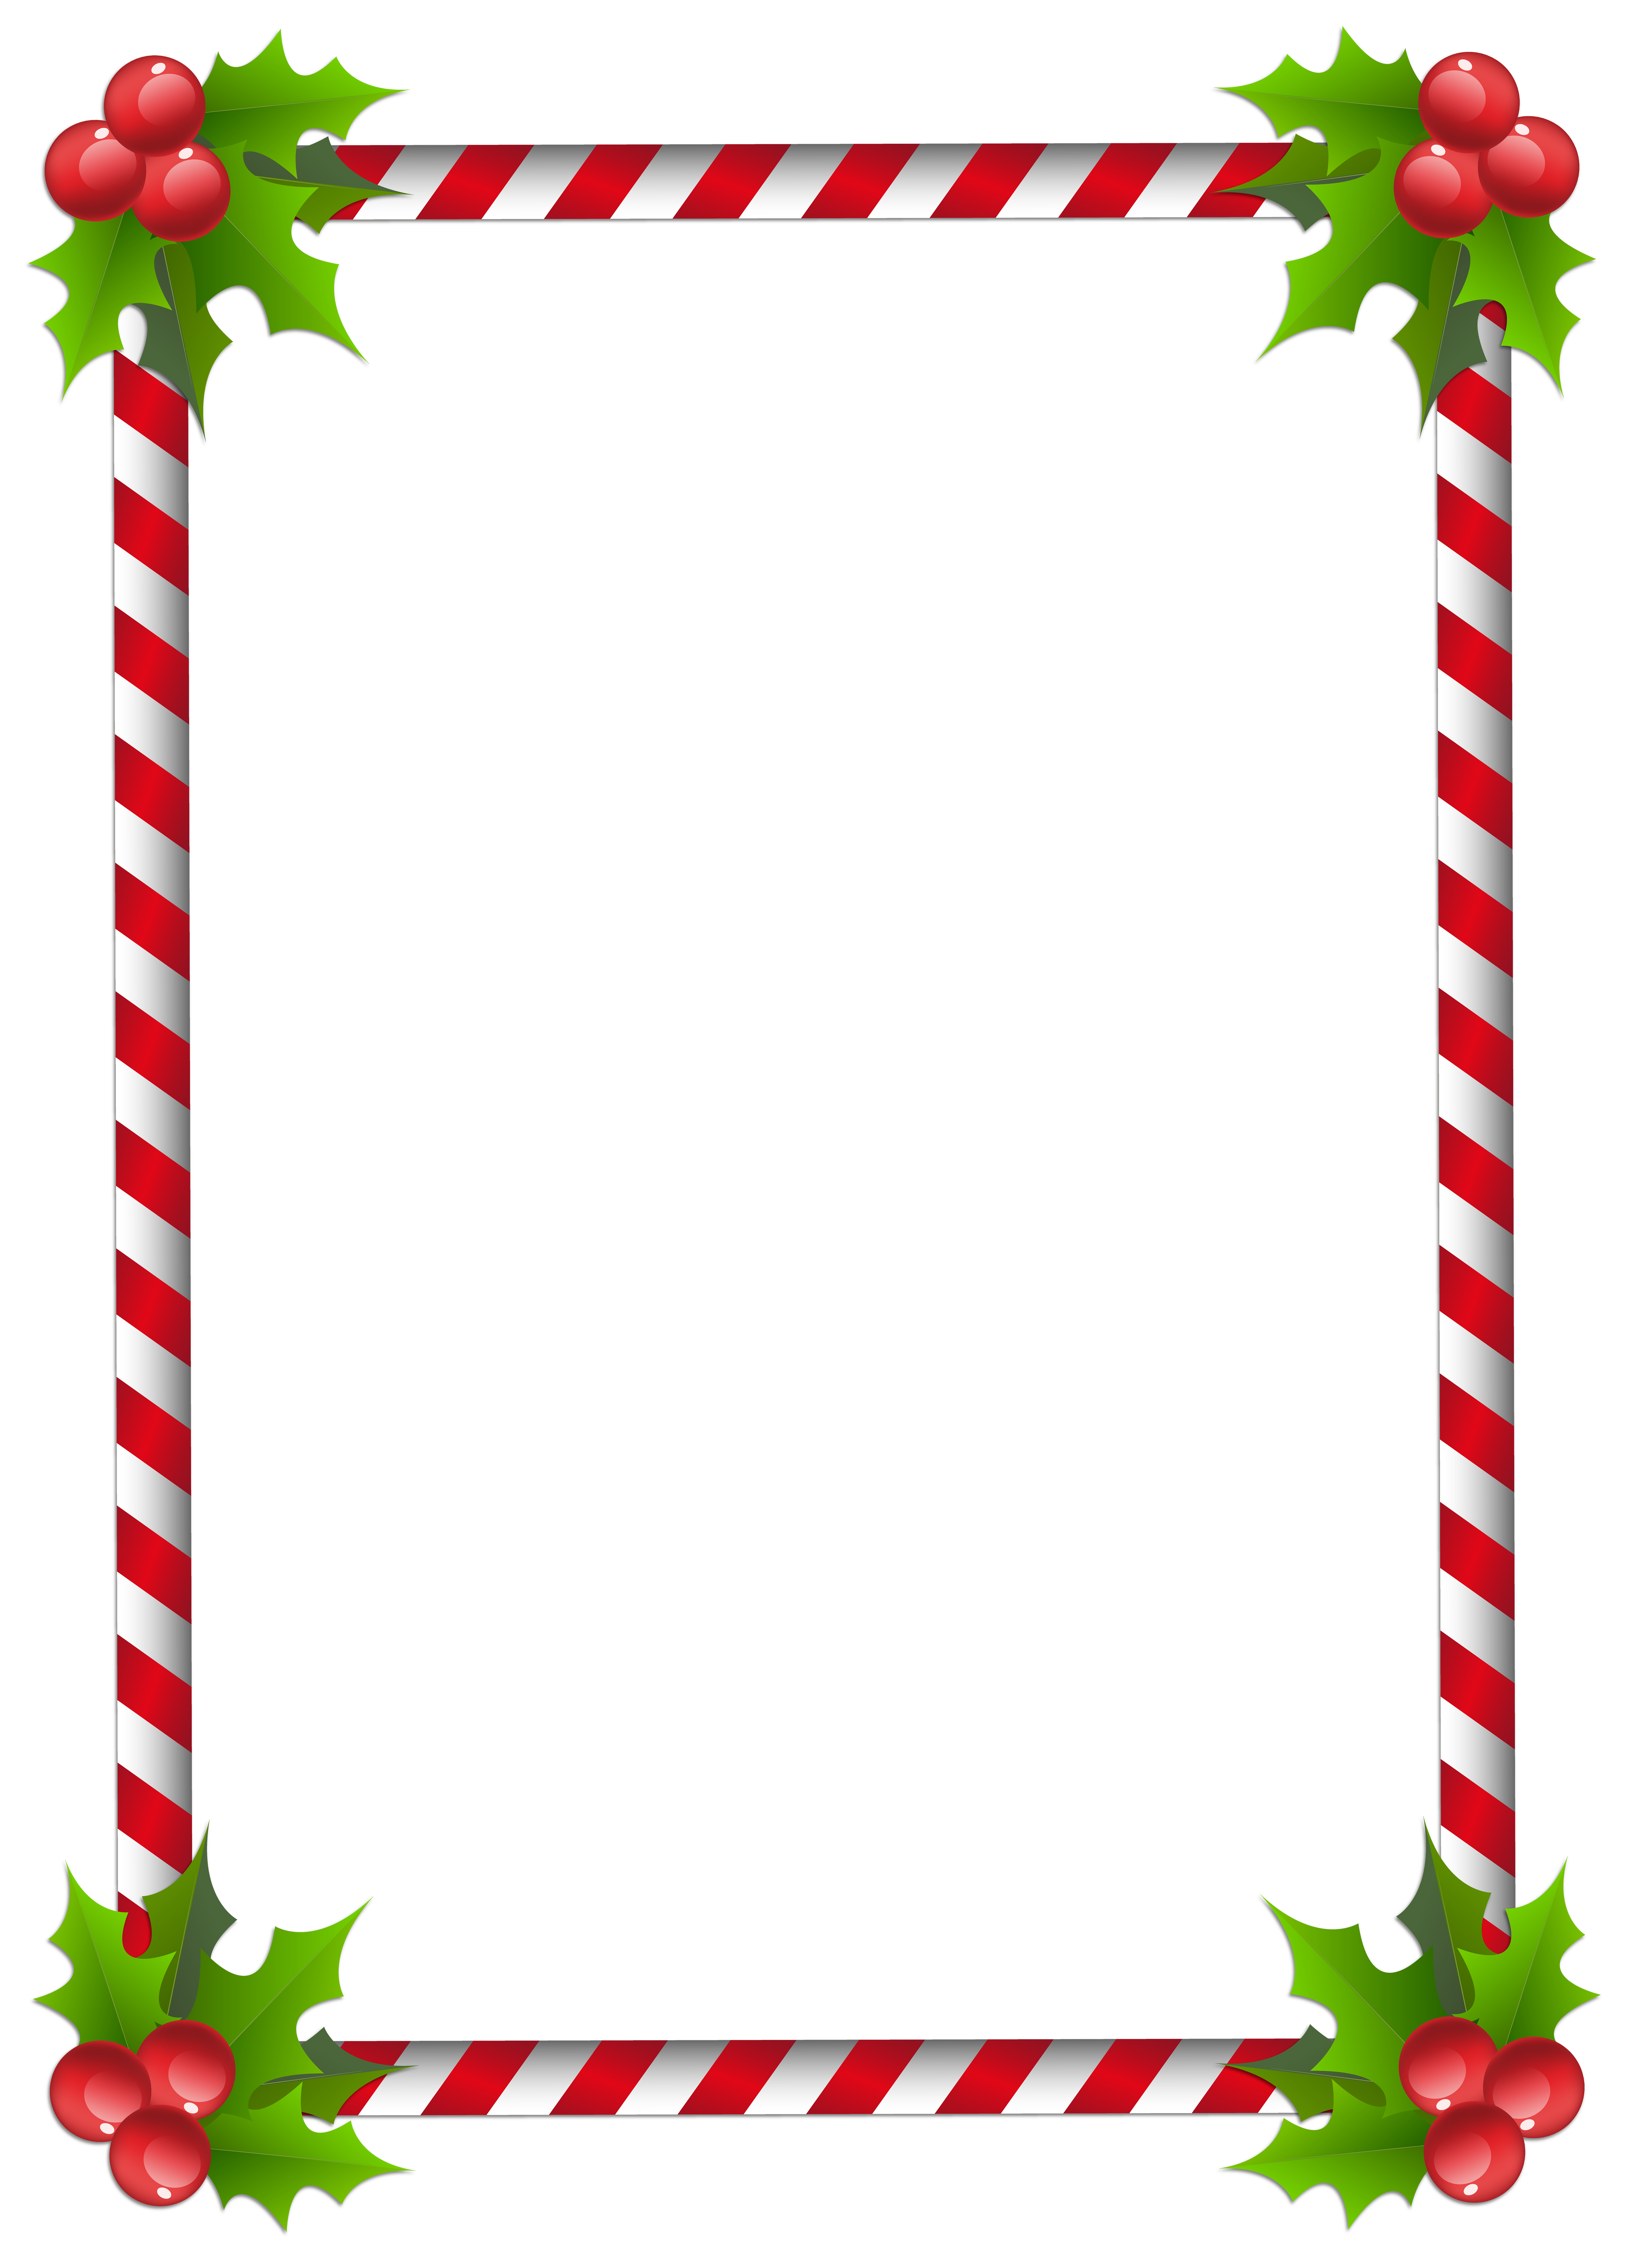 Santa Claus Christmas tree Picture Frames Clip art.